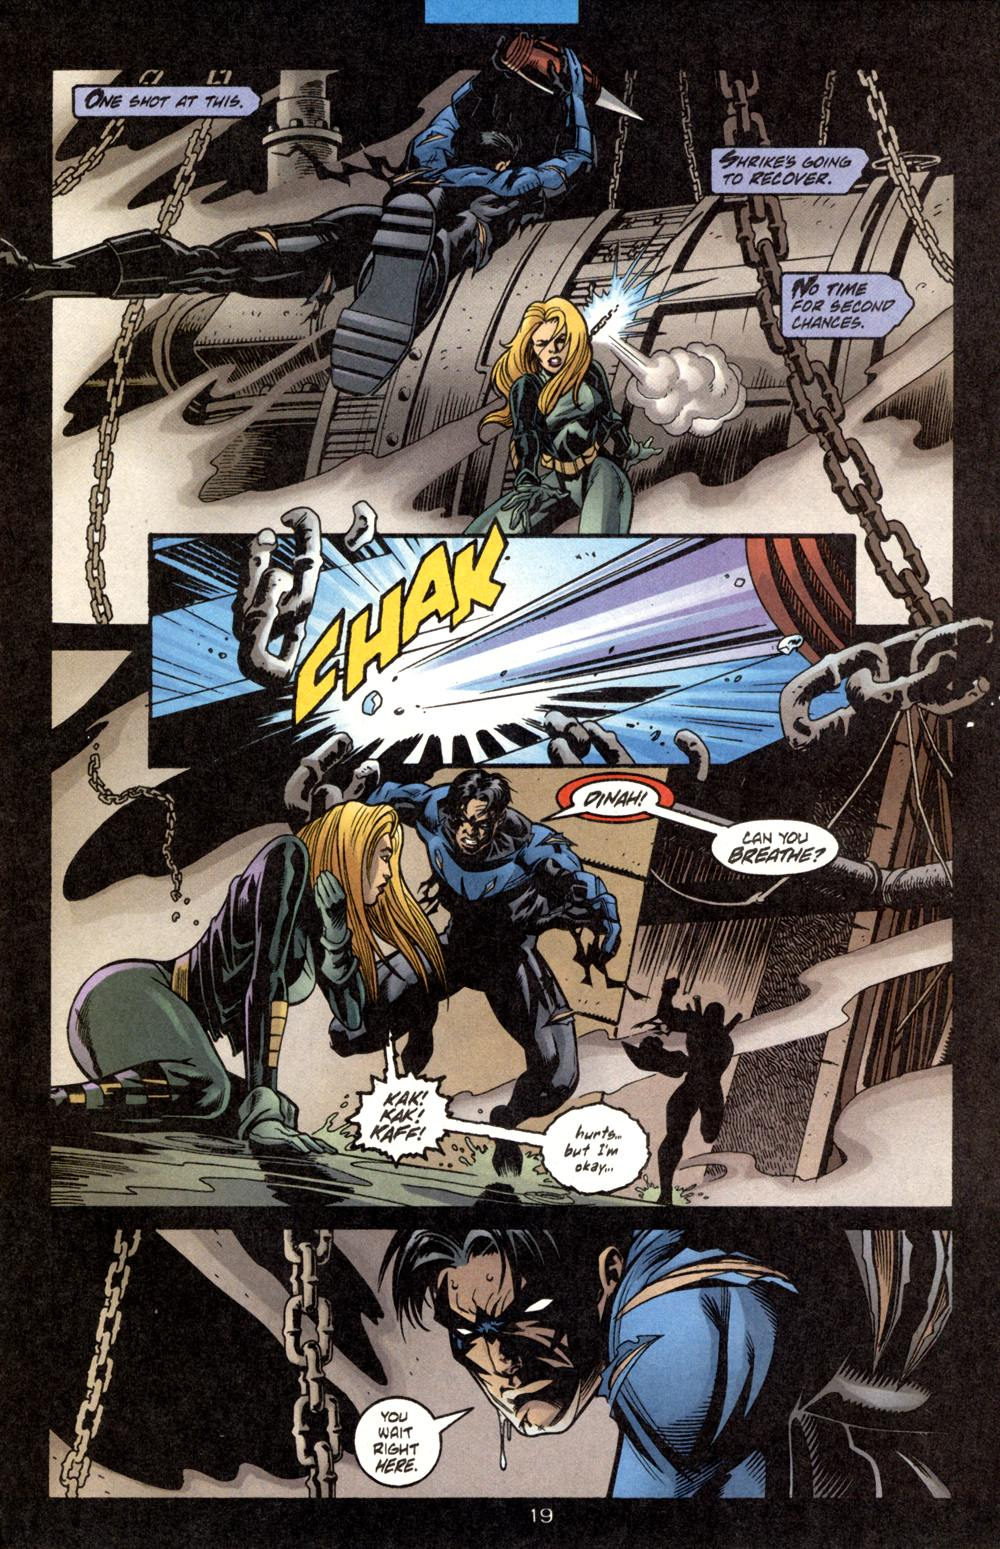 Black Canary And Nightwing D19 nightwing blackcanary.jpg Black Canary Birds Of Prey